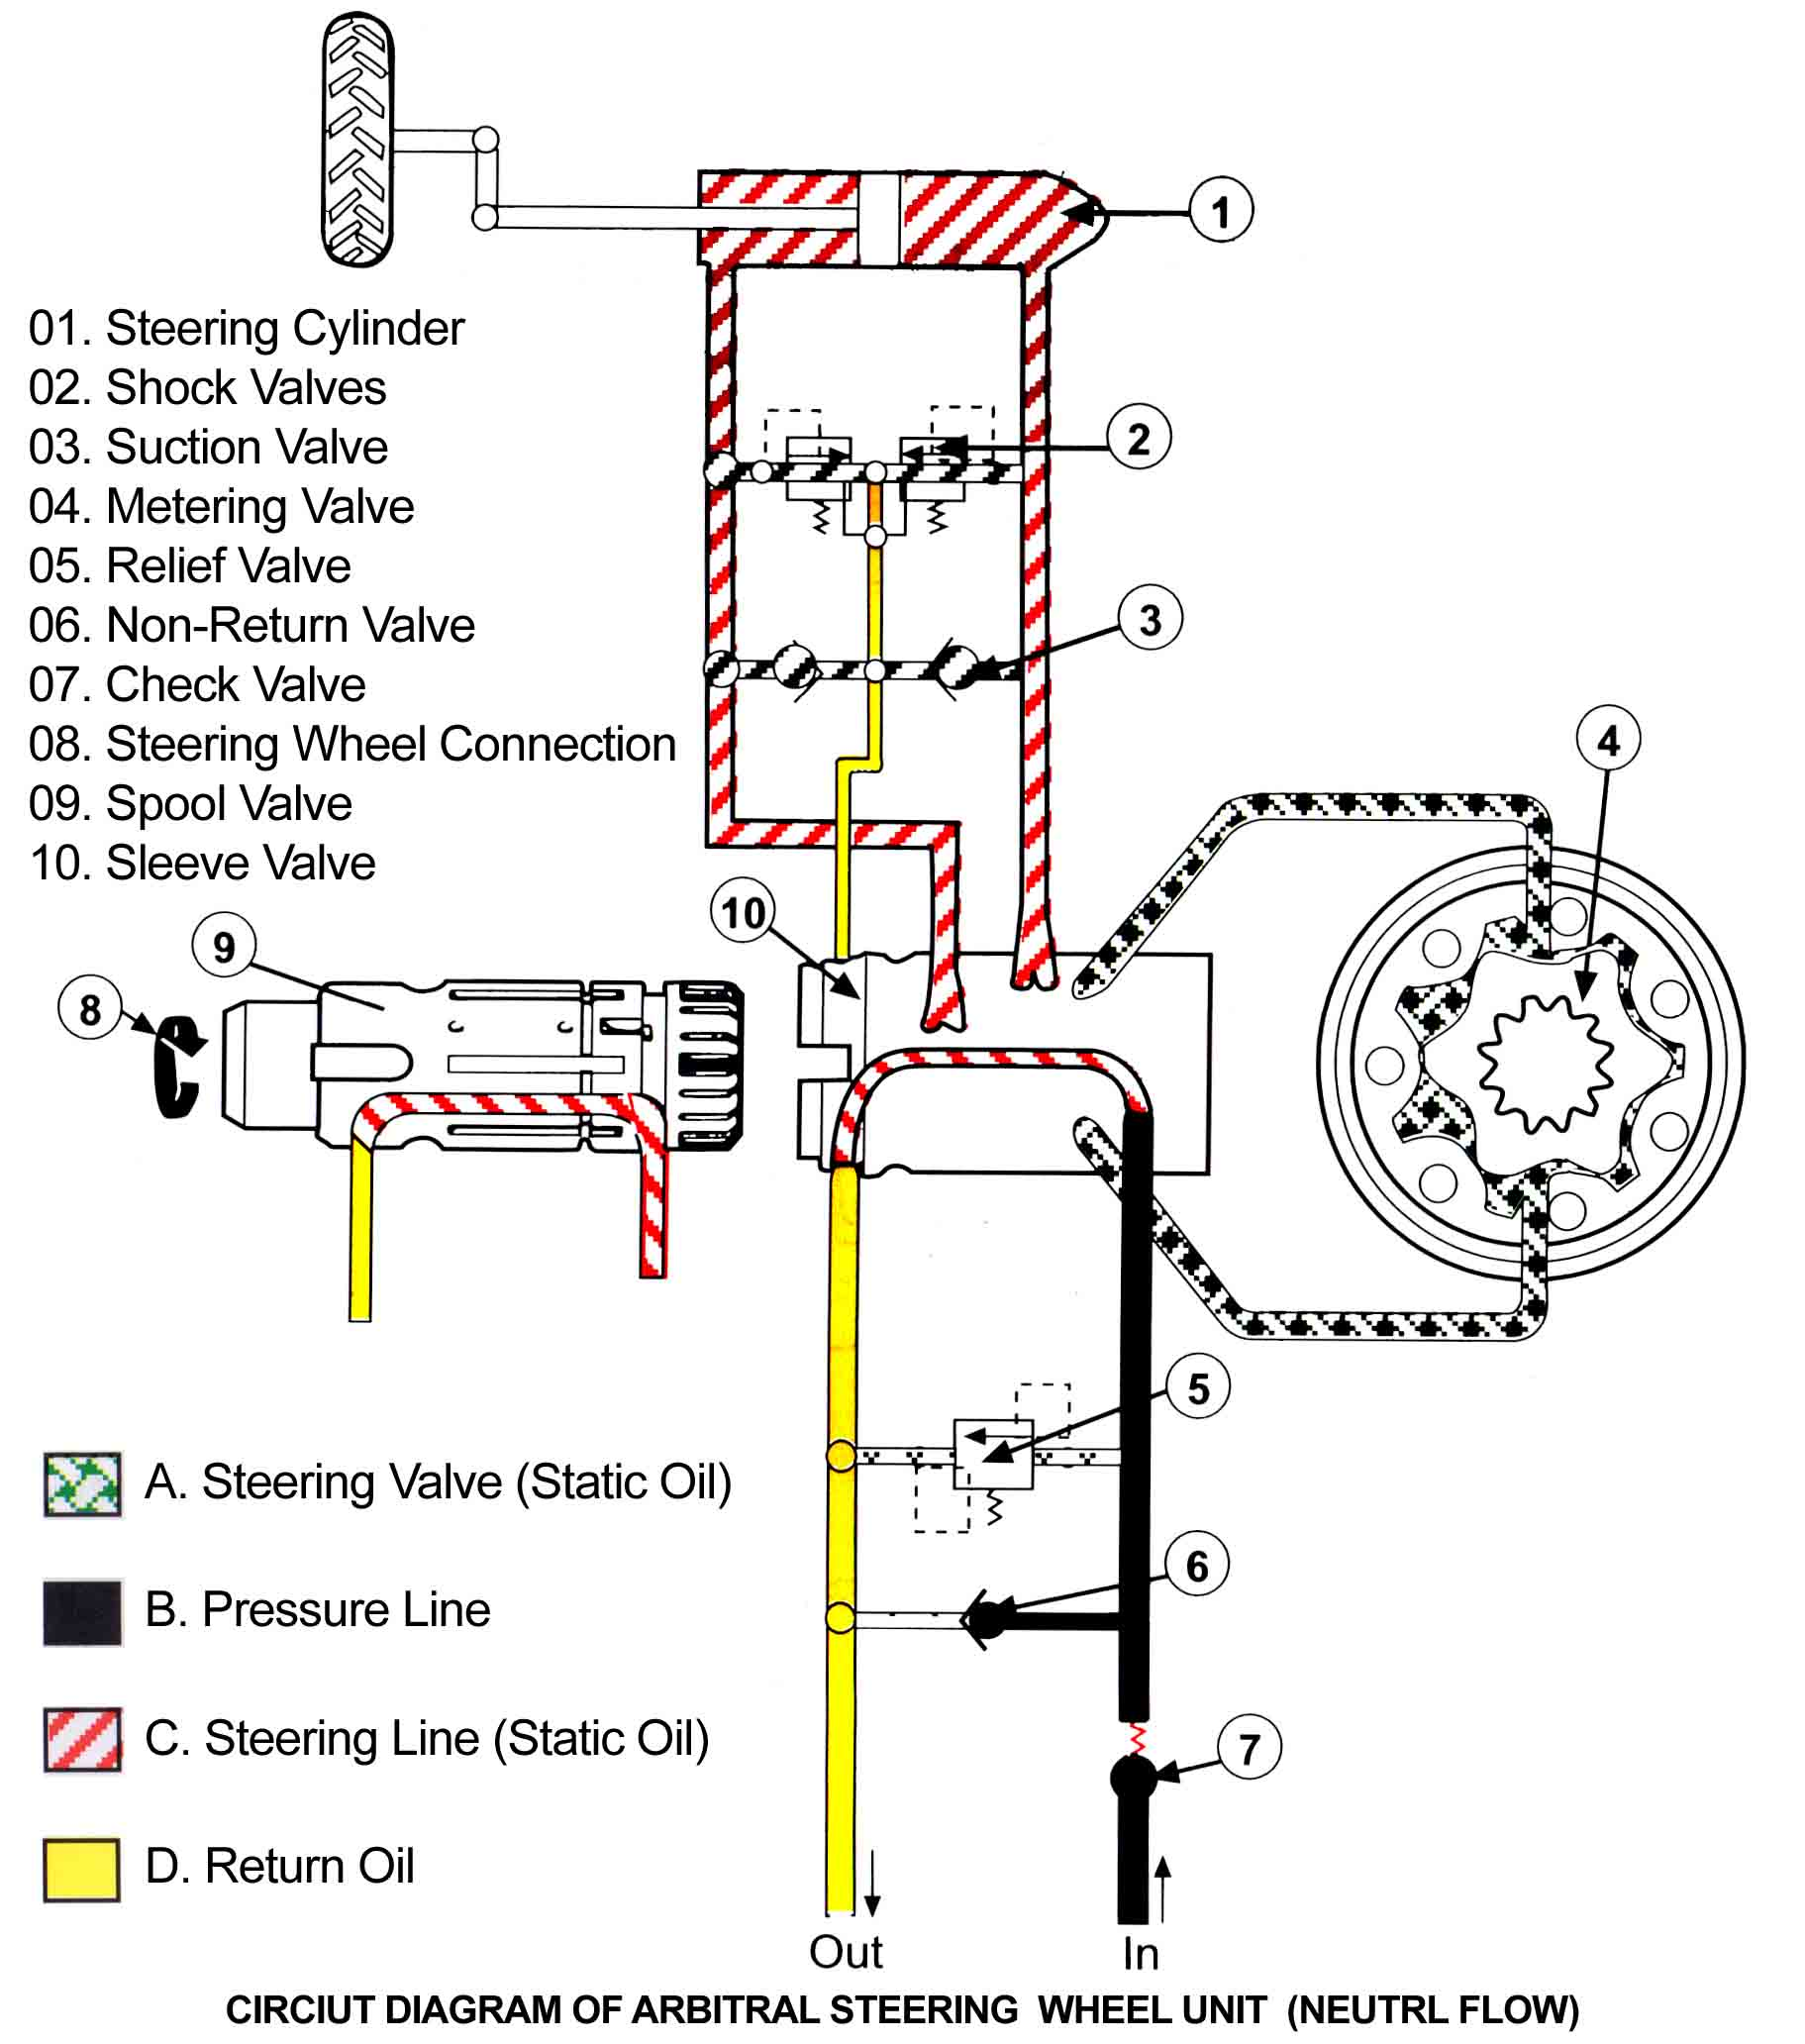 power steering flow diagram   27 wiring diagram images